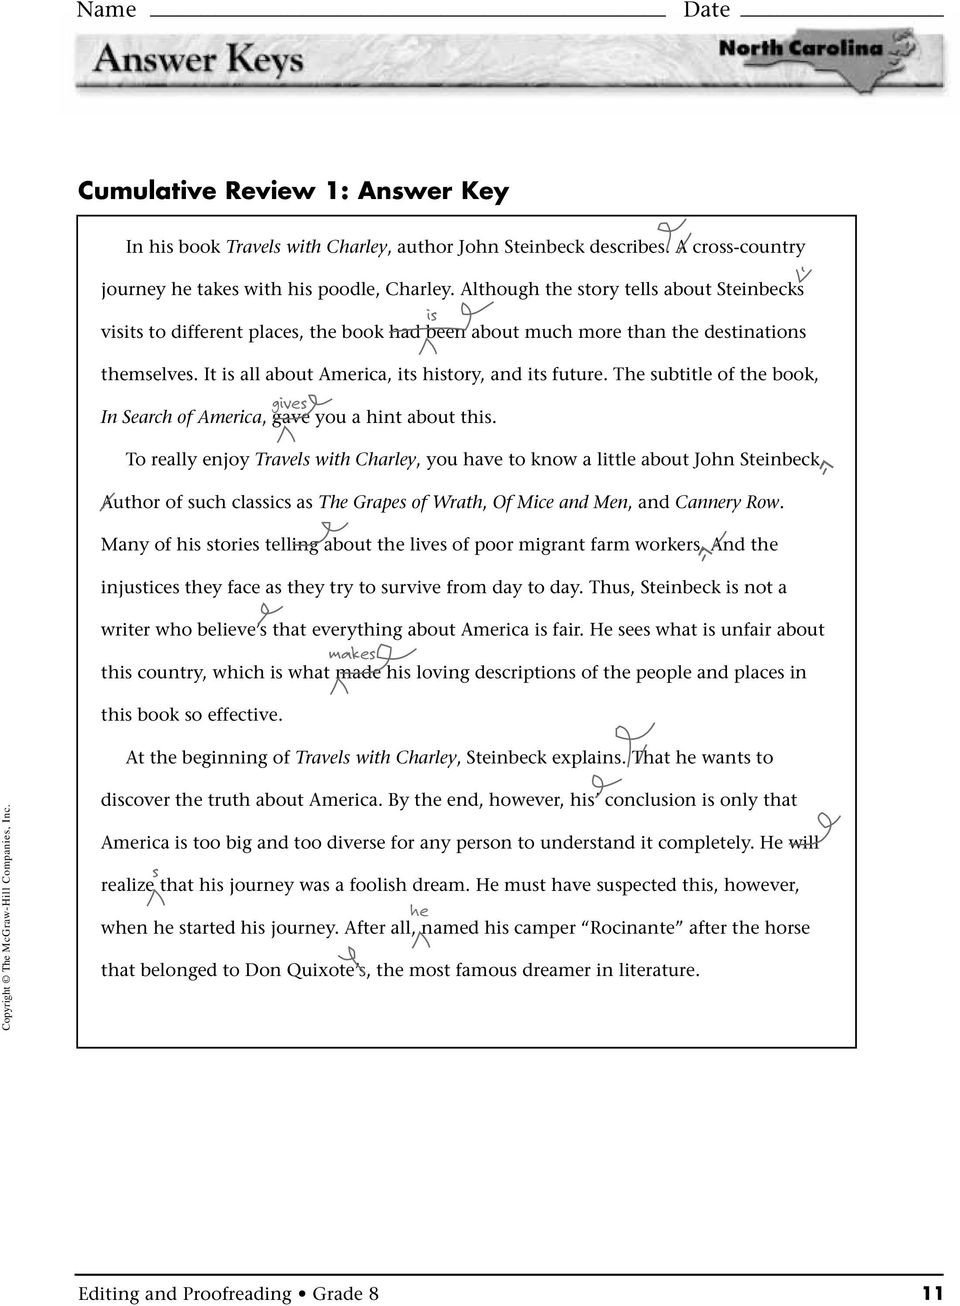 Proofreading Worksheets Middle School Editing and Proofreading Pdf Free Download